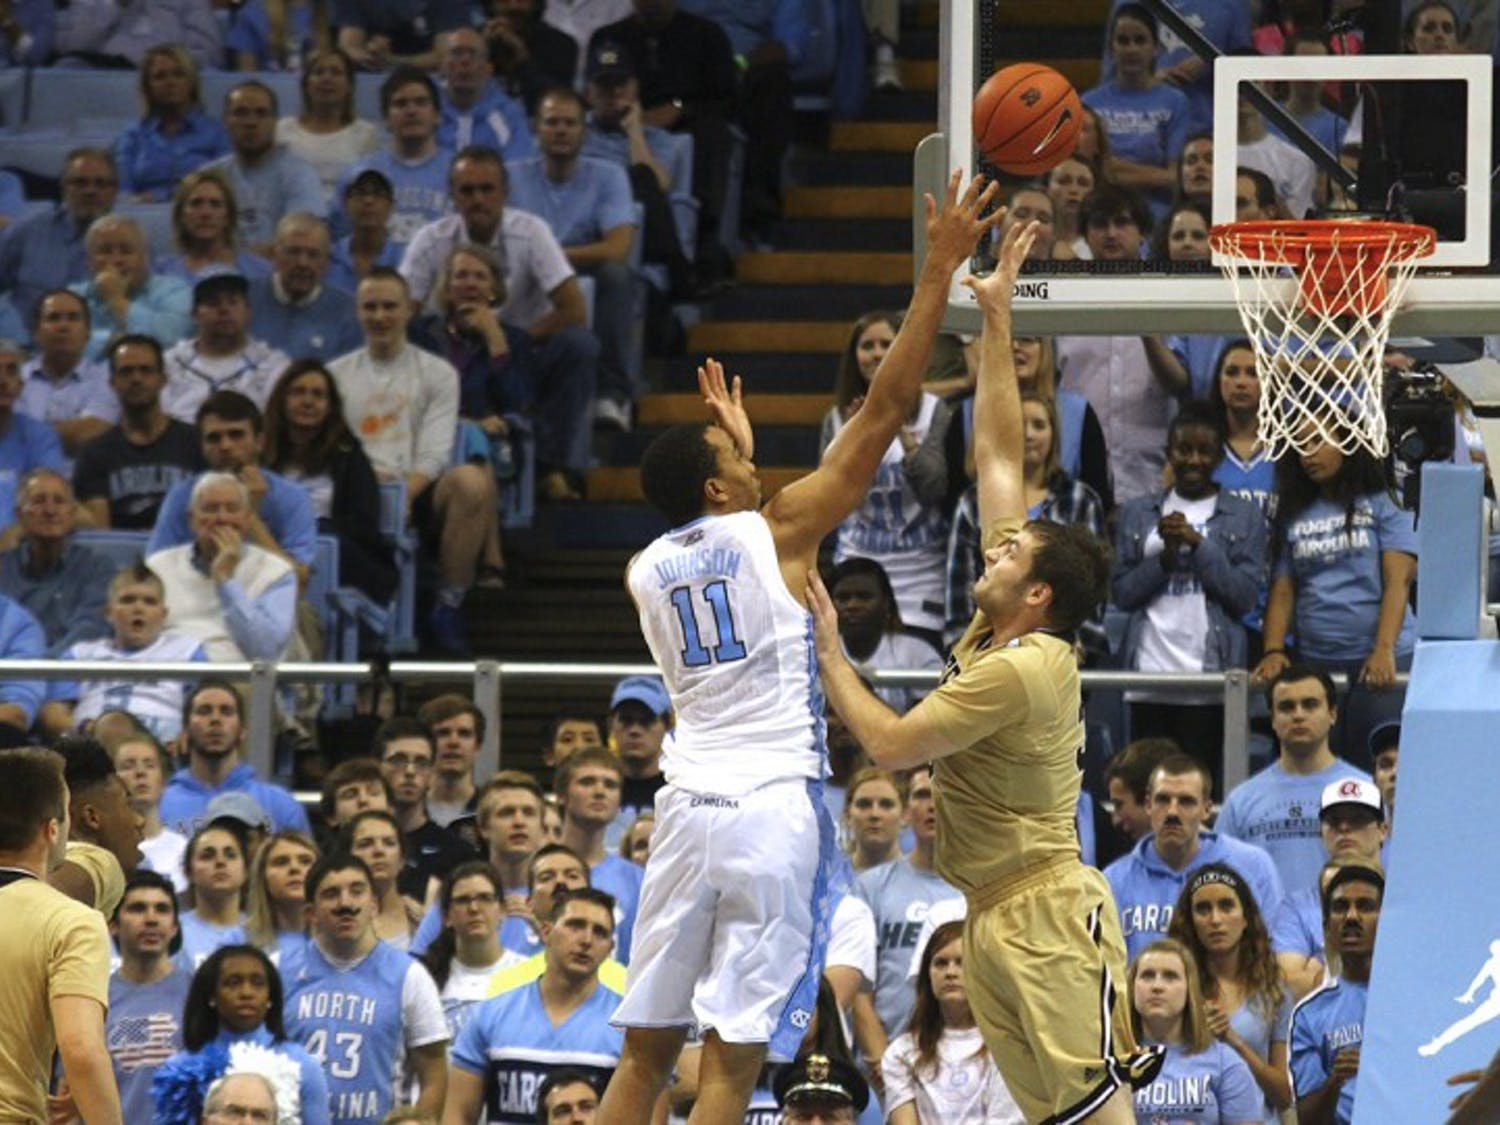 Brice Johnson (11) scores over a Wofford player Wednesday night. The Tar Heels won 78-58.